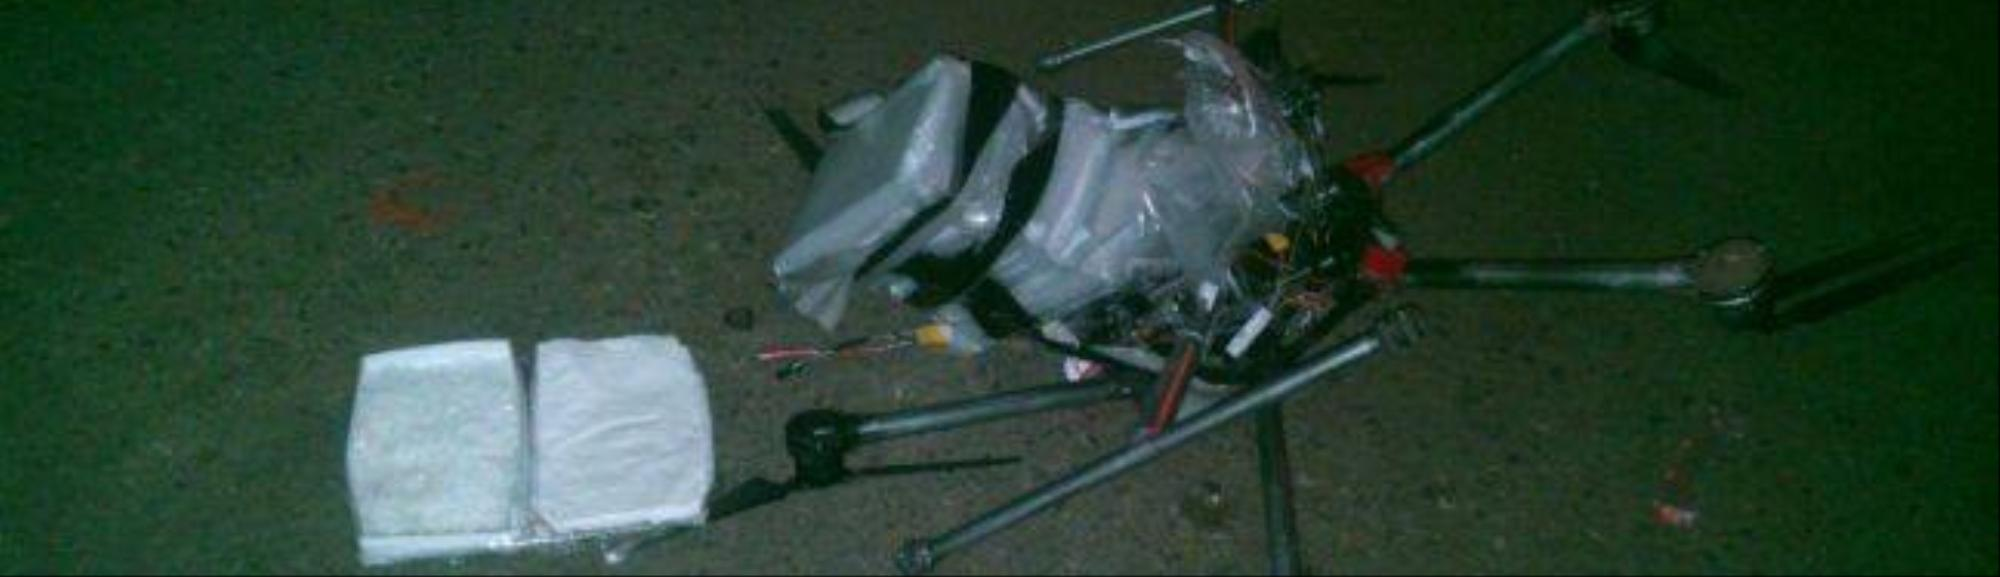 Drone Carrying Three Kilos of Meth Crashes in Tijuana